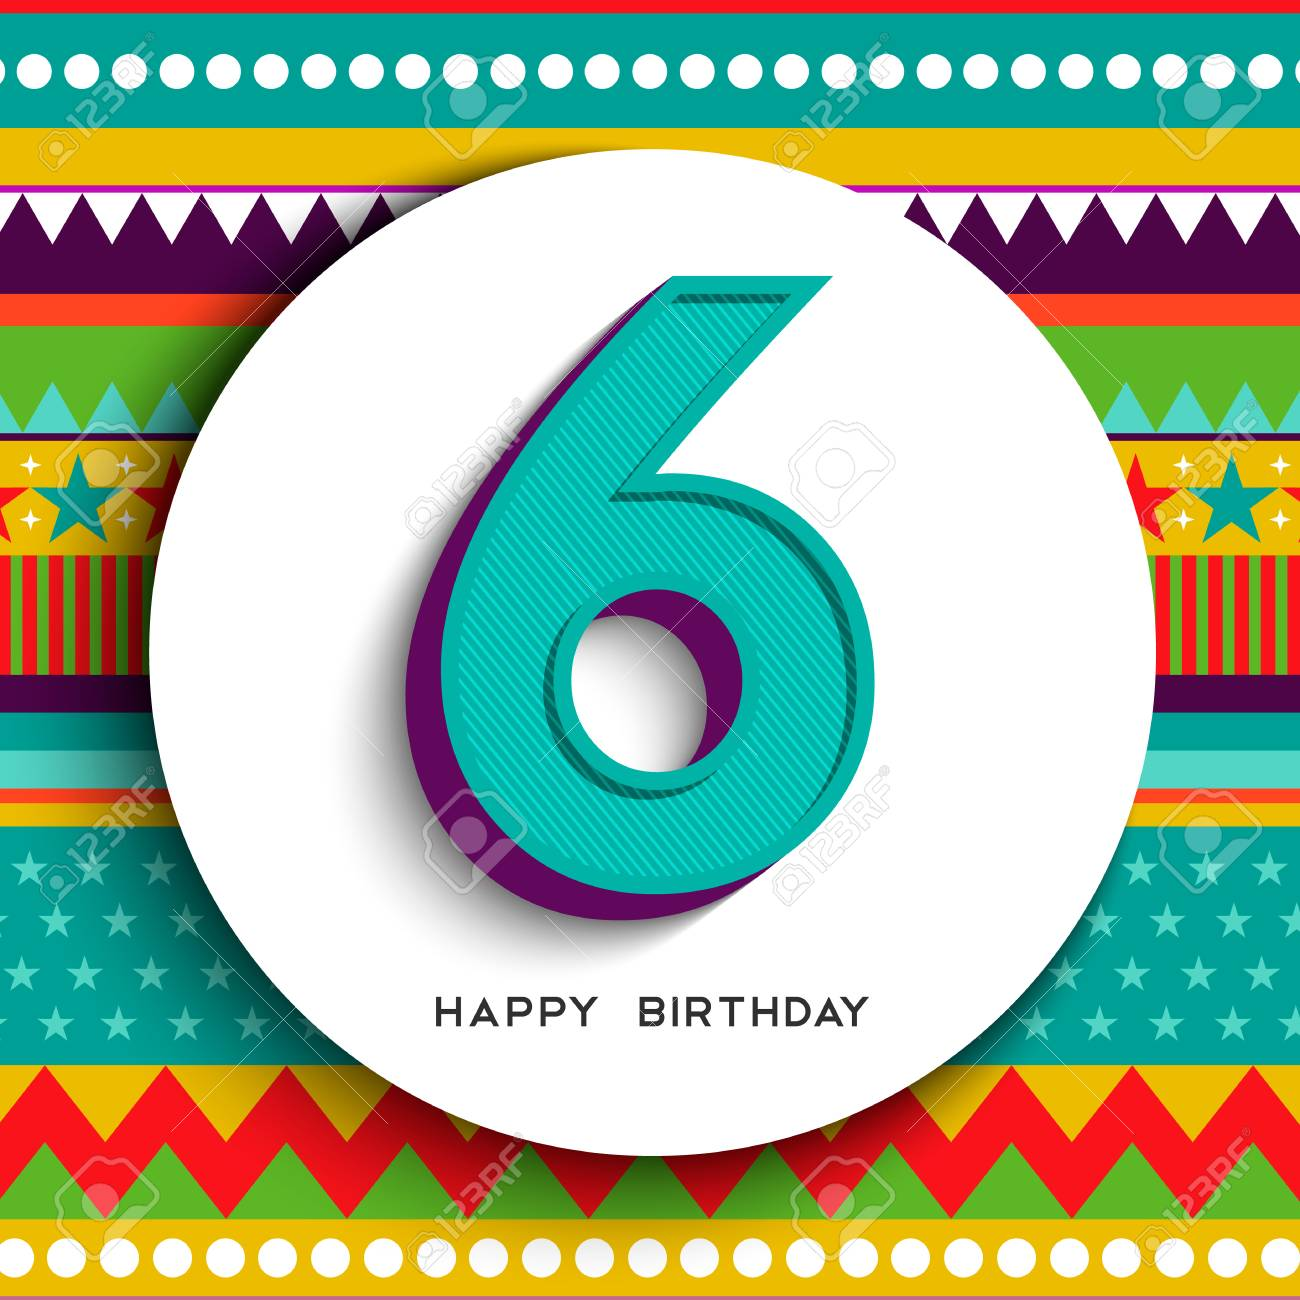 Happy Birthday six 6 year fun design with number, text label and colorful background. Ideal for party invitation or greeting card. - 102242167